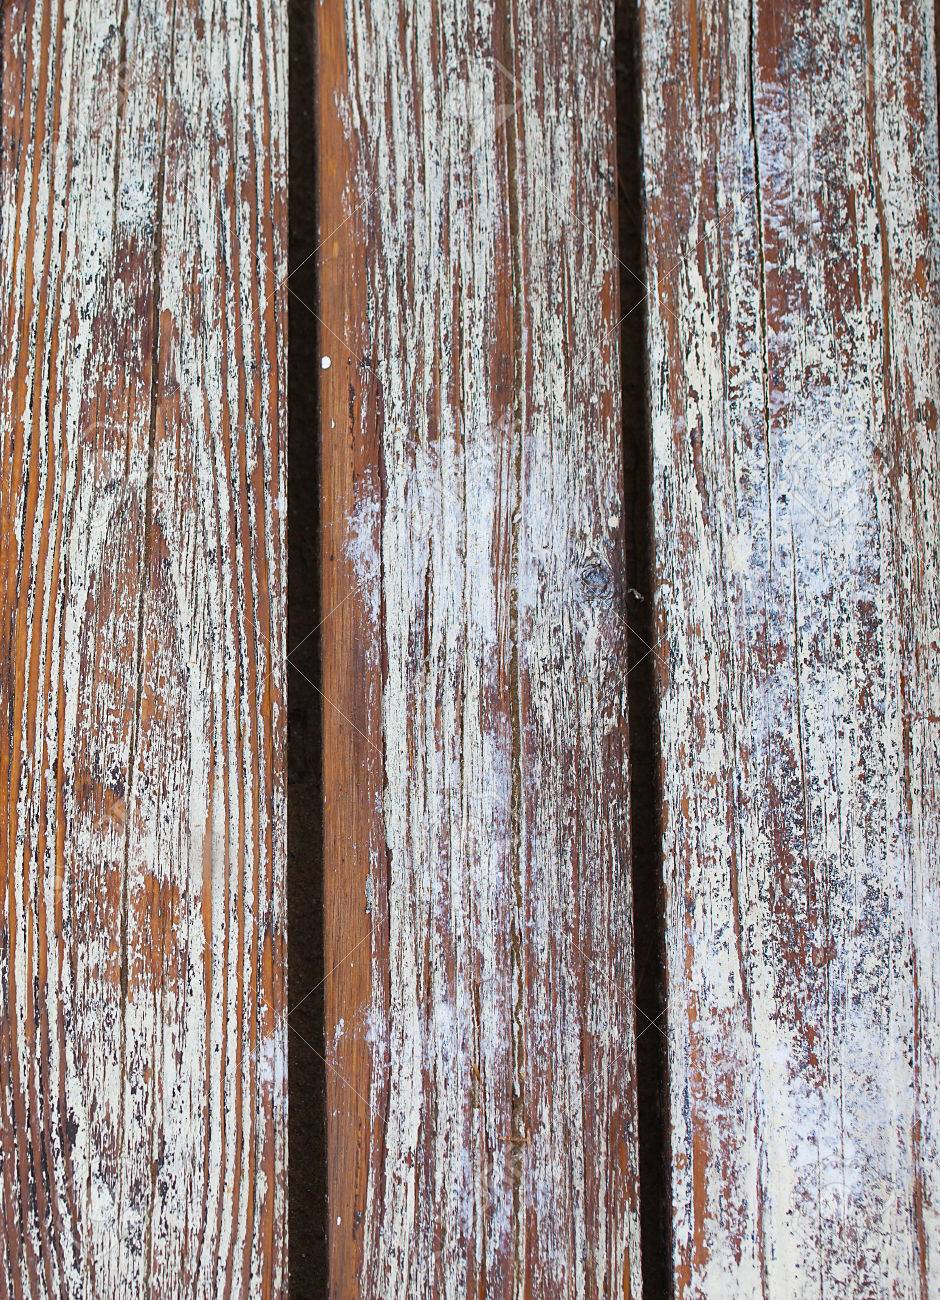 Old wooden slats with peeling paint.Background texture. - 79376781